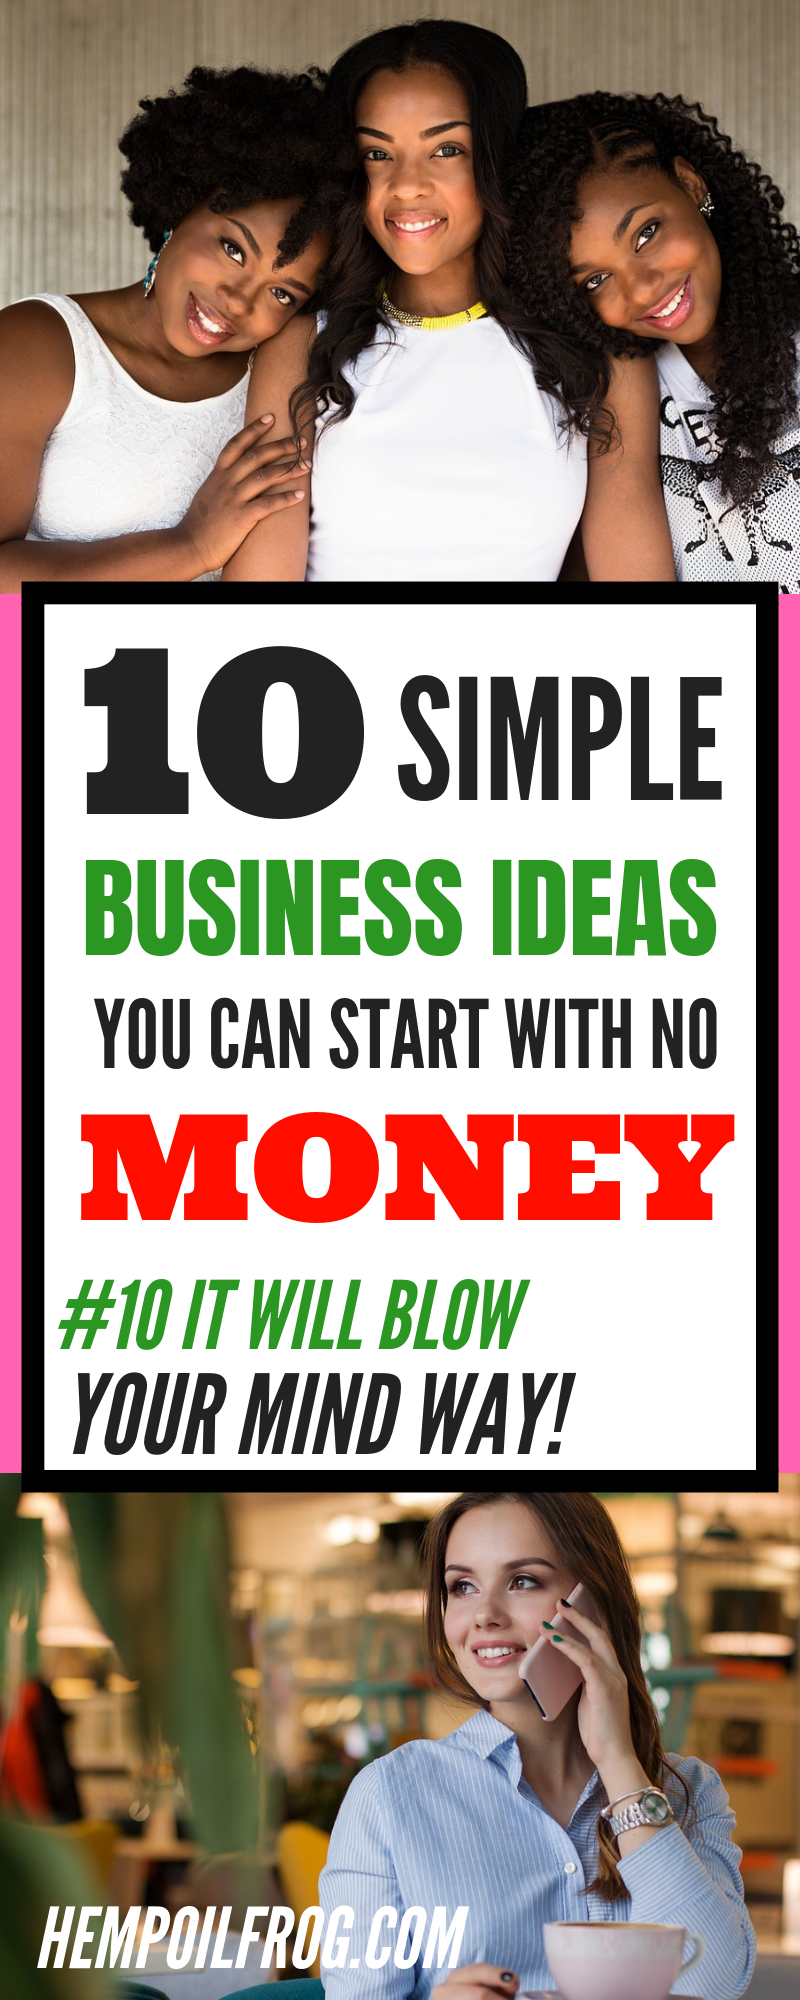 10 Simple Home Business Ideas You Can Start With No Money